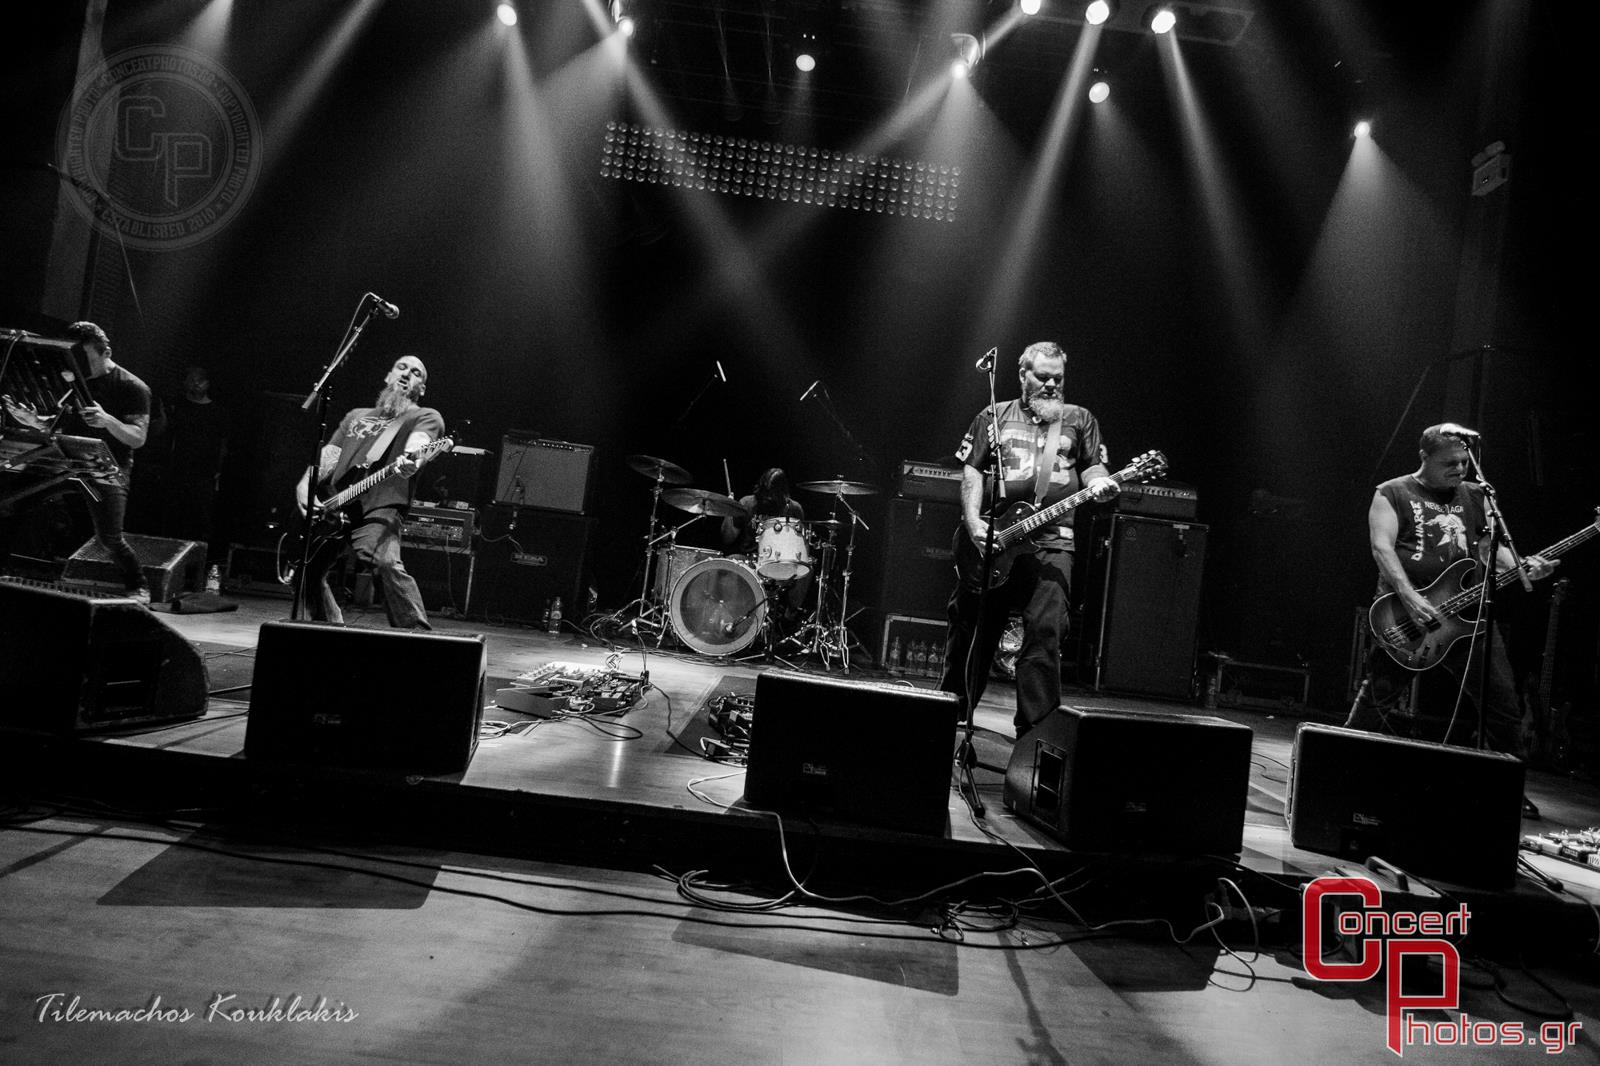 Neurosis-Neurosis photographer:  - concertphotos_20140707_23_56_33